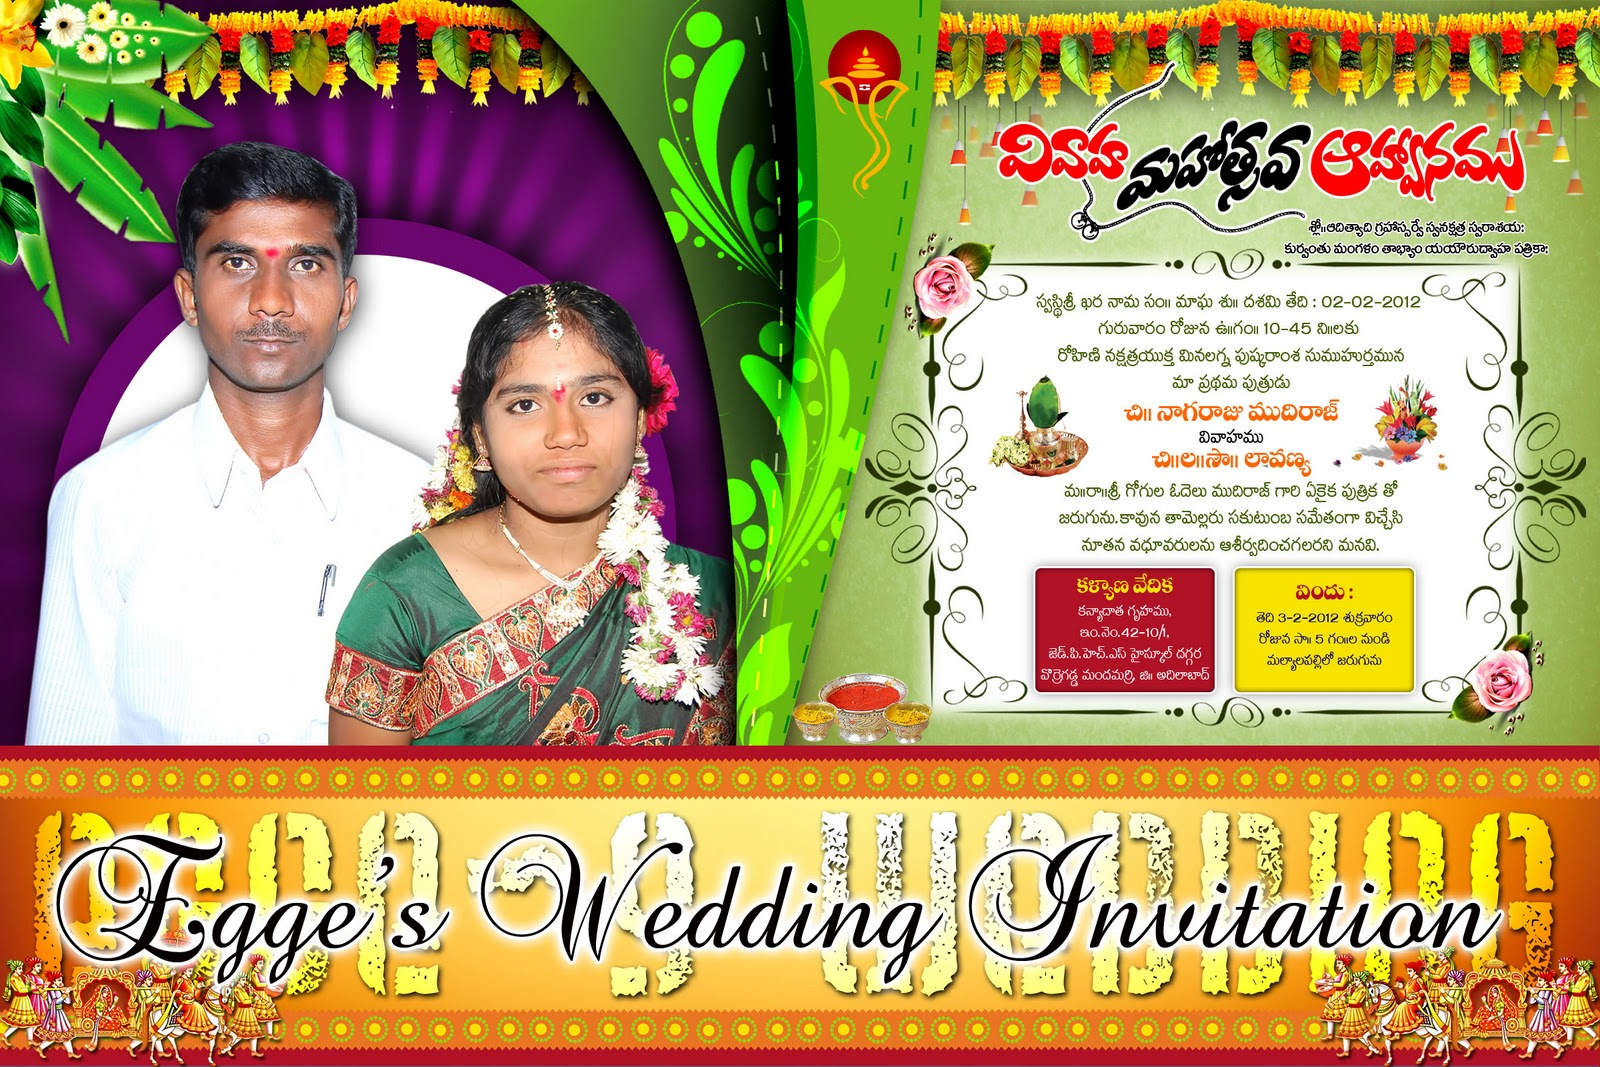 Wedding Invitation Banner Design Design Wedding Invitation